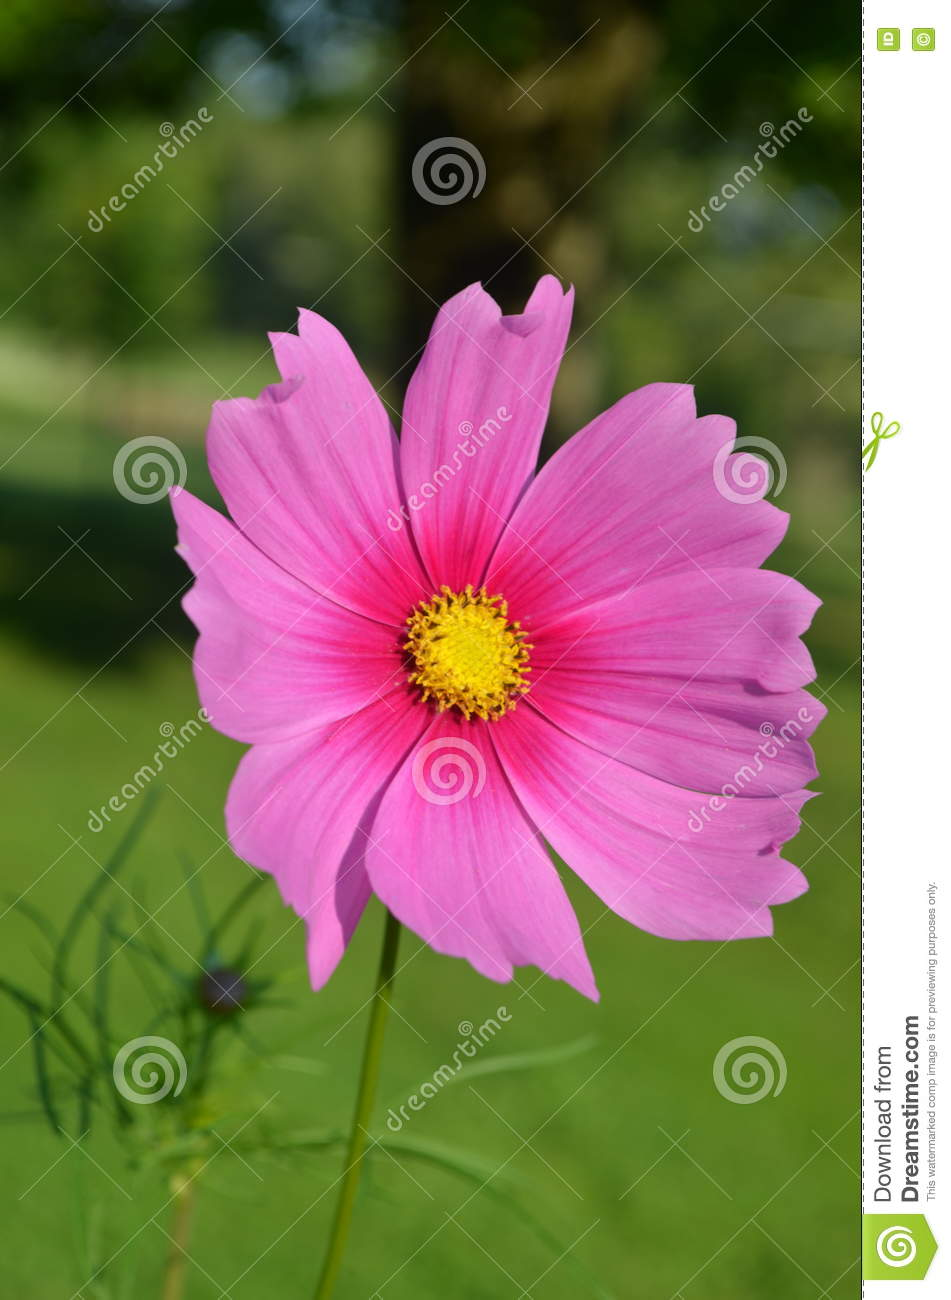 Giant Pink Cosmos Flower Open To The Sun Stock Image Image Of